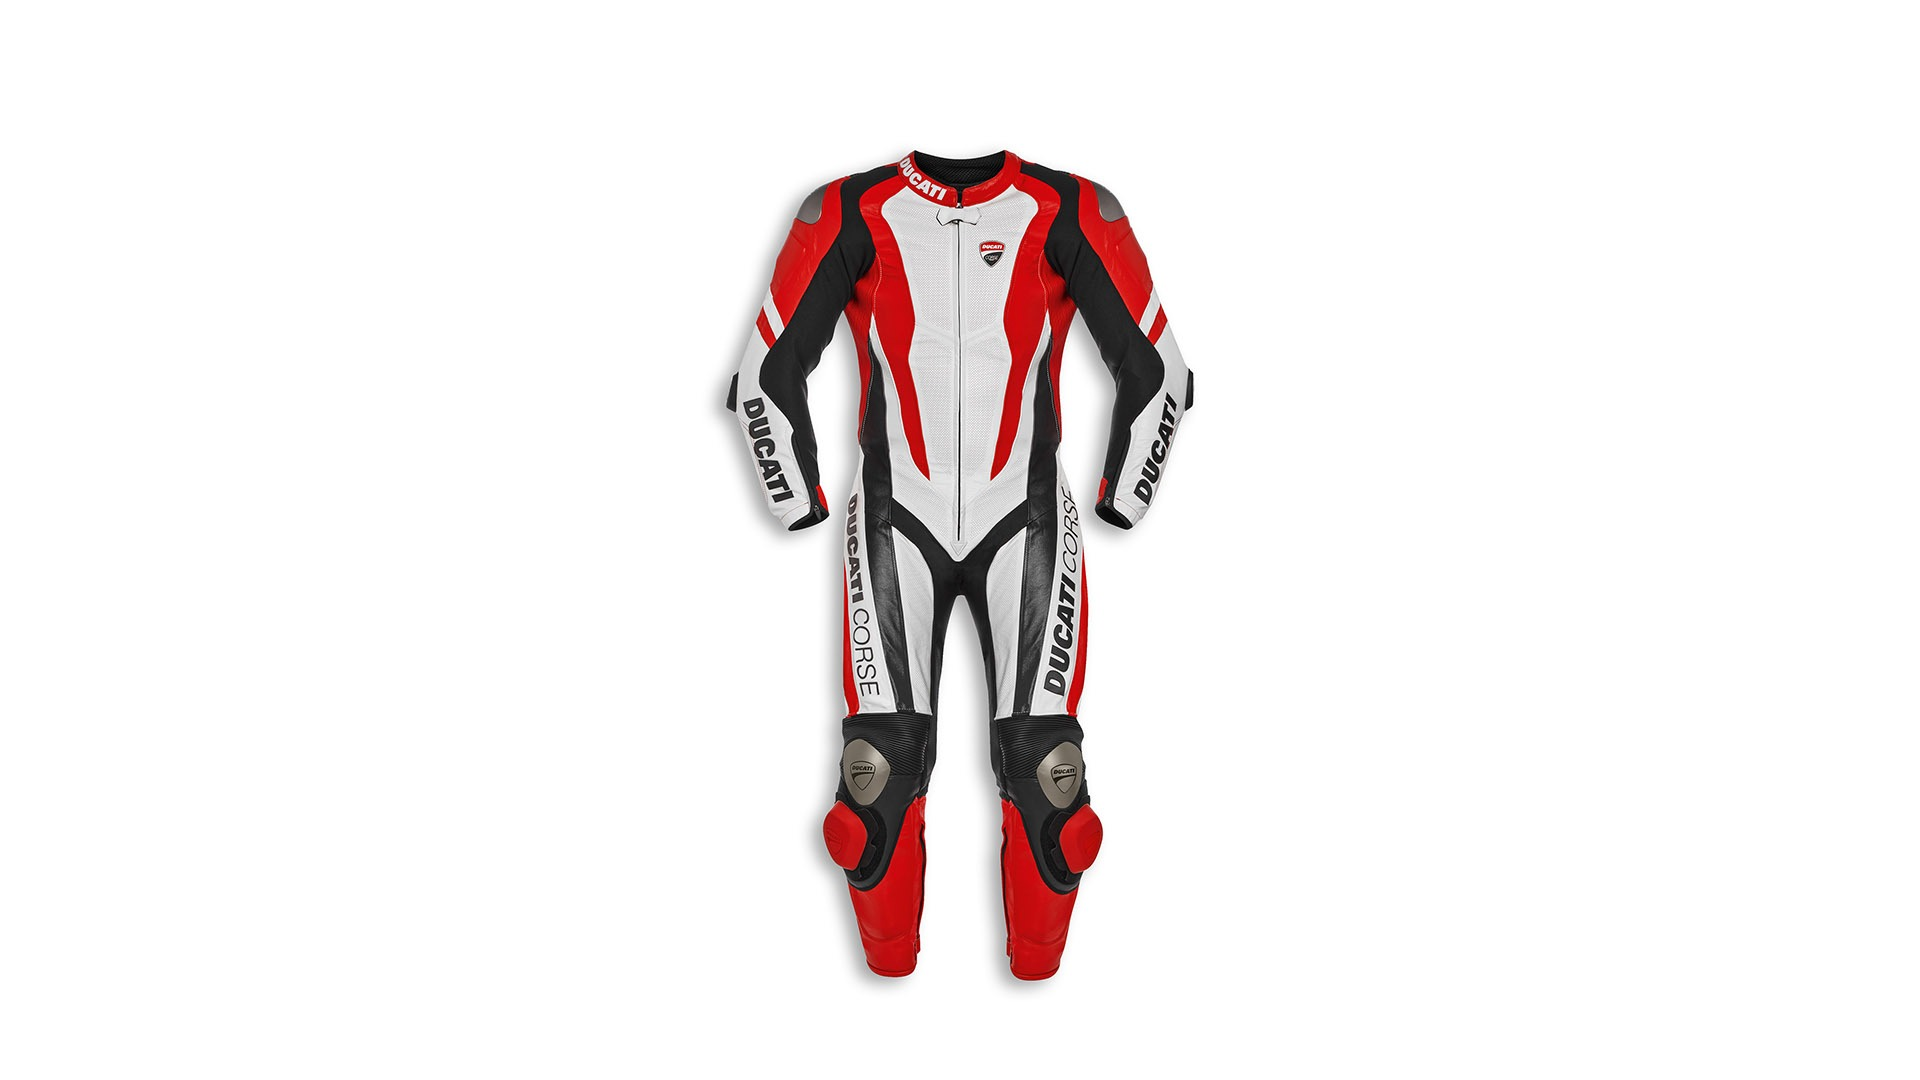 02 DUCATI APPAREL PERFORMANCE WEAR